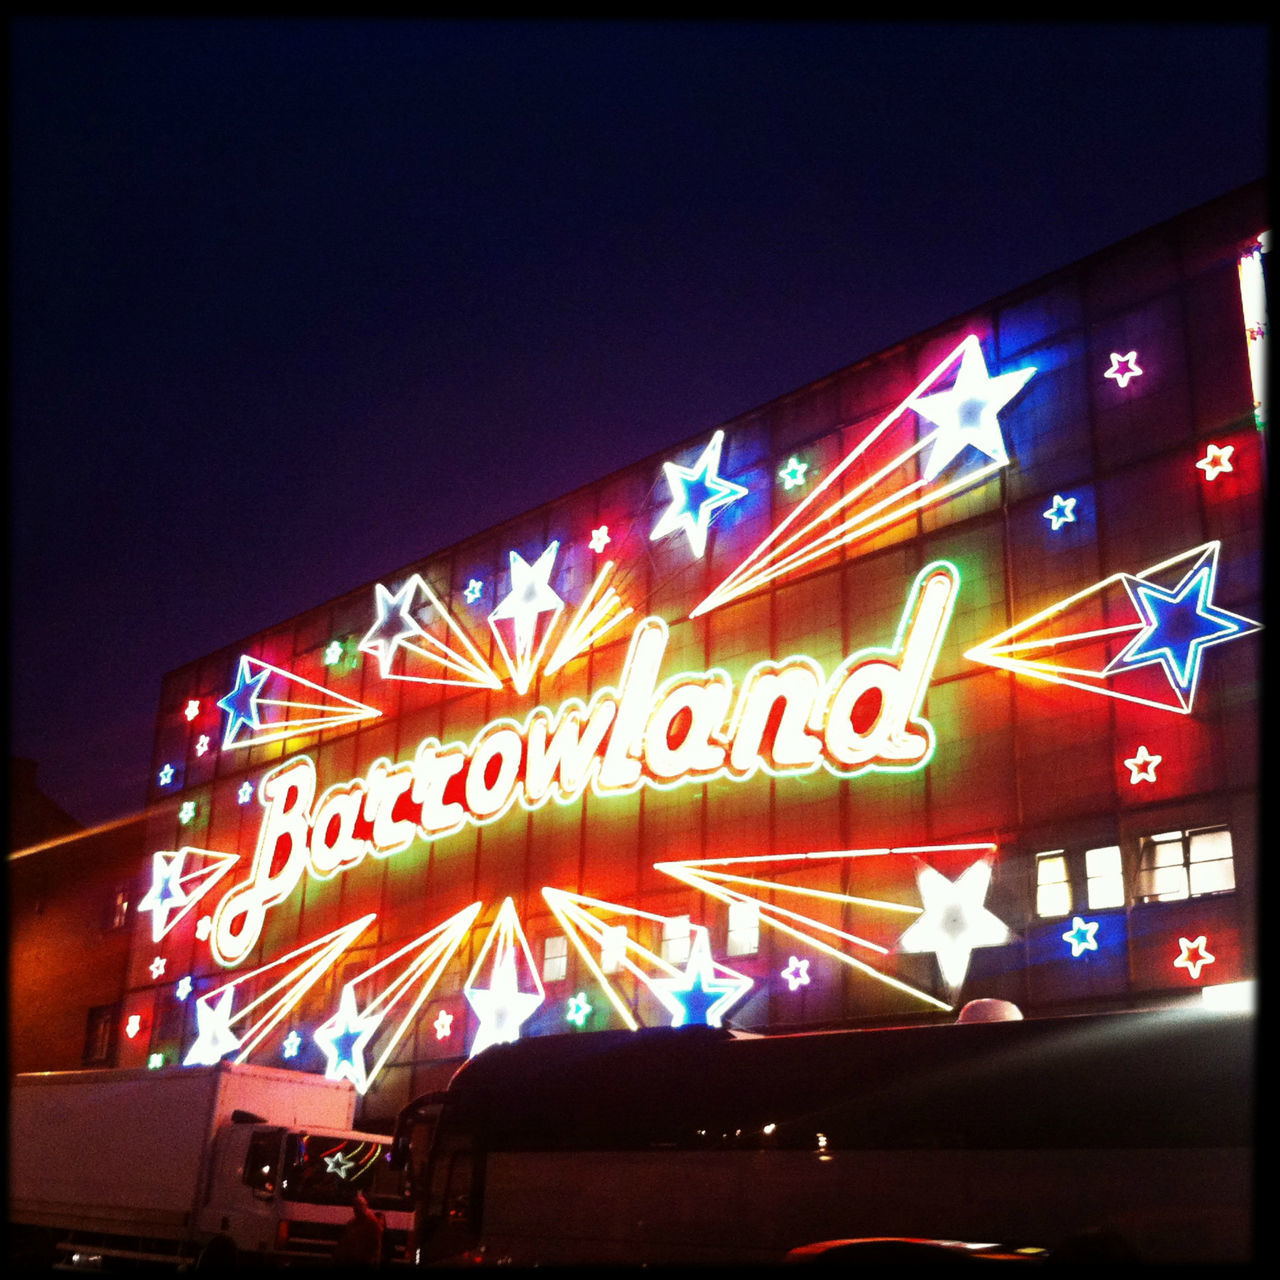 Best venue in glasgow - sprung dancefloor, starry ceiling and snakebite make for a damn good gig. Barras City City City Life Gig Glasgow  Hipstamatic Illuminated Low Angle View Multi Colored Music Neon Night Nightlife No People Outdoors Retro Scotland Square Stars Text The Barrowlands